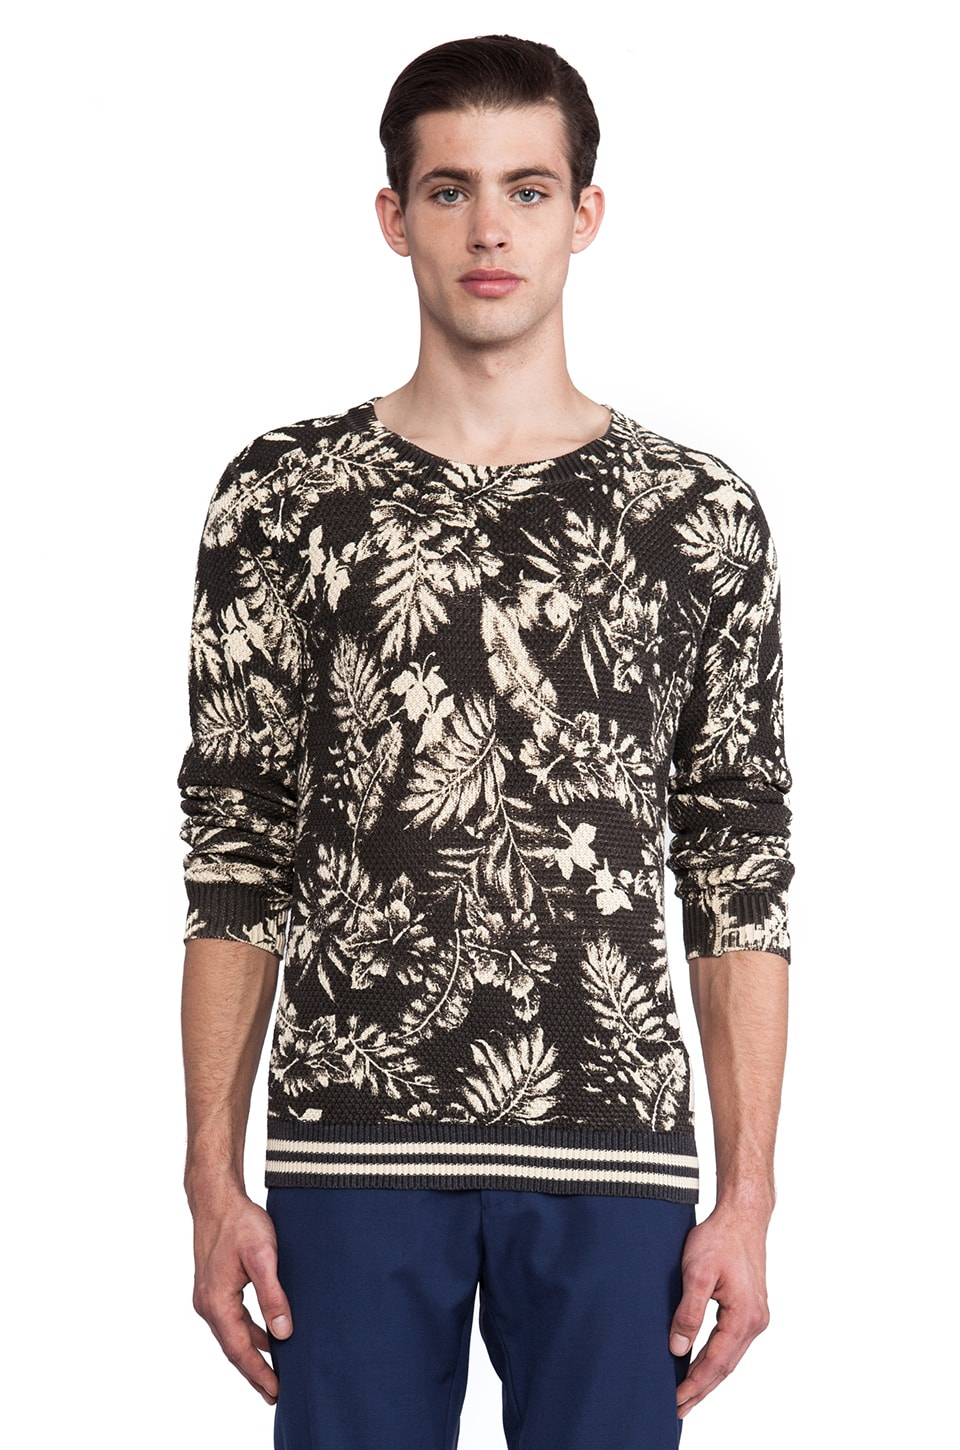 Scotch & Soda Allover Printed Cable Crewneck in Black & Ecru